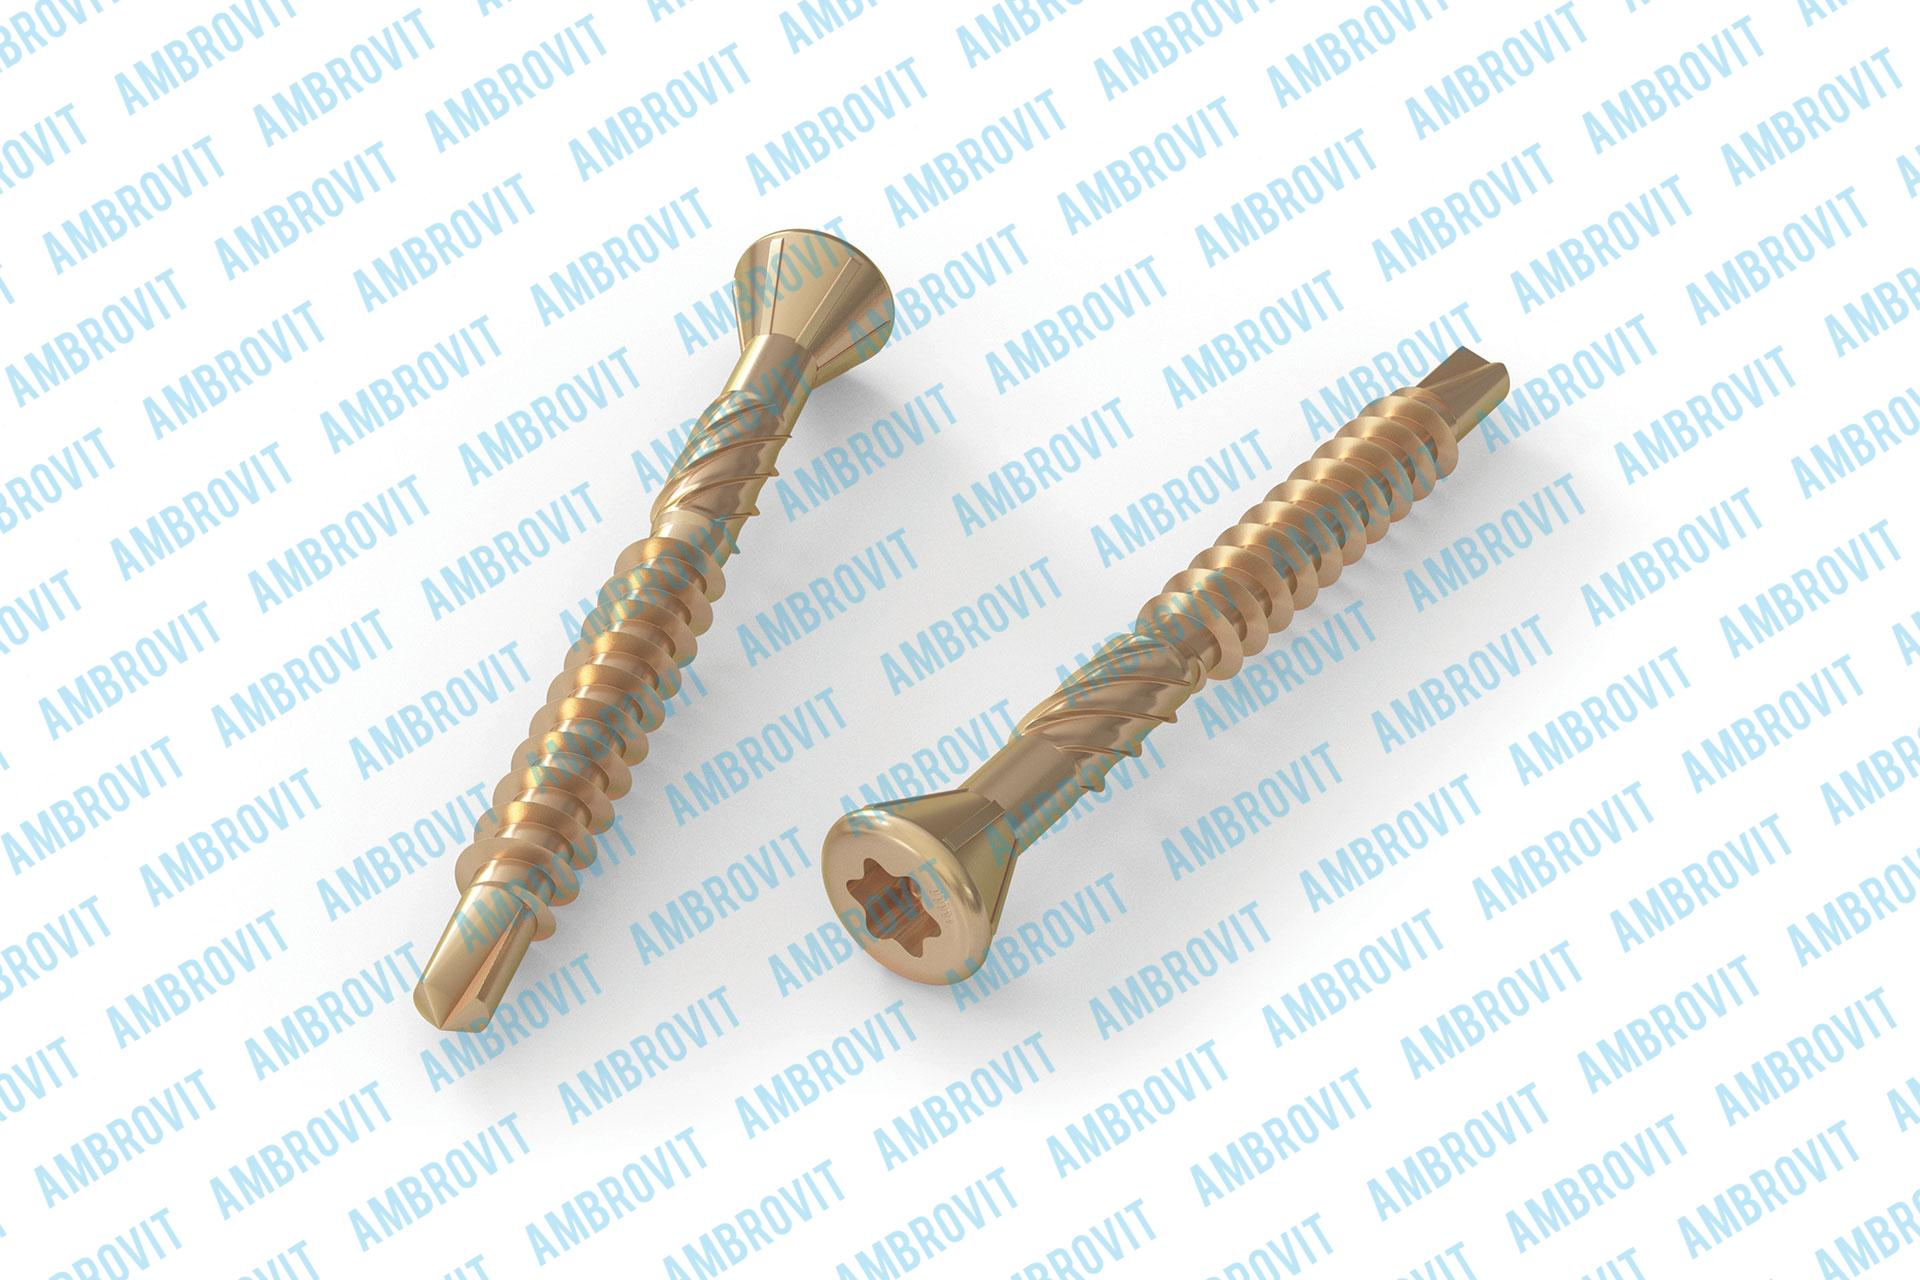 Carpentry wood floor board screws TX 60° small head w/ribs, serration and drilling point